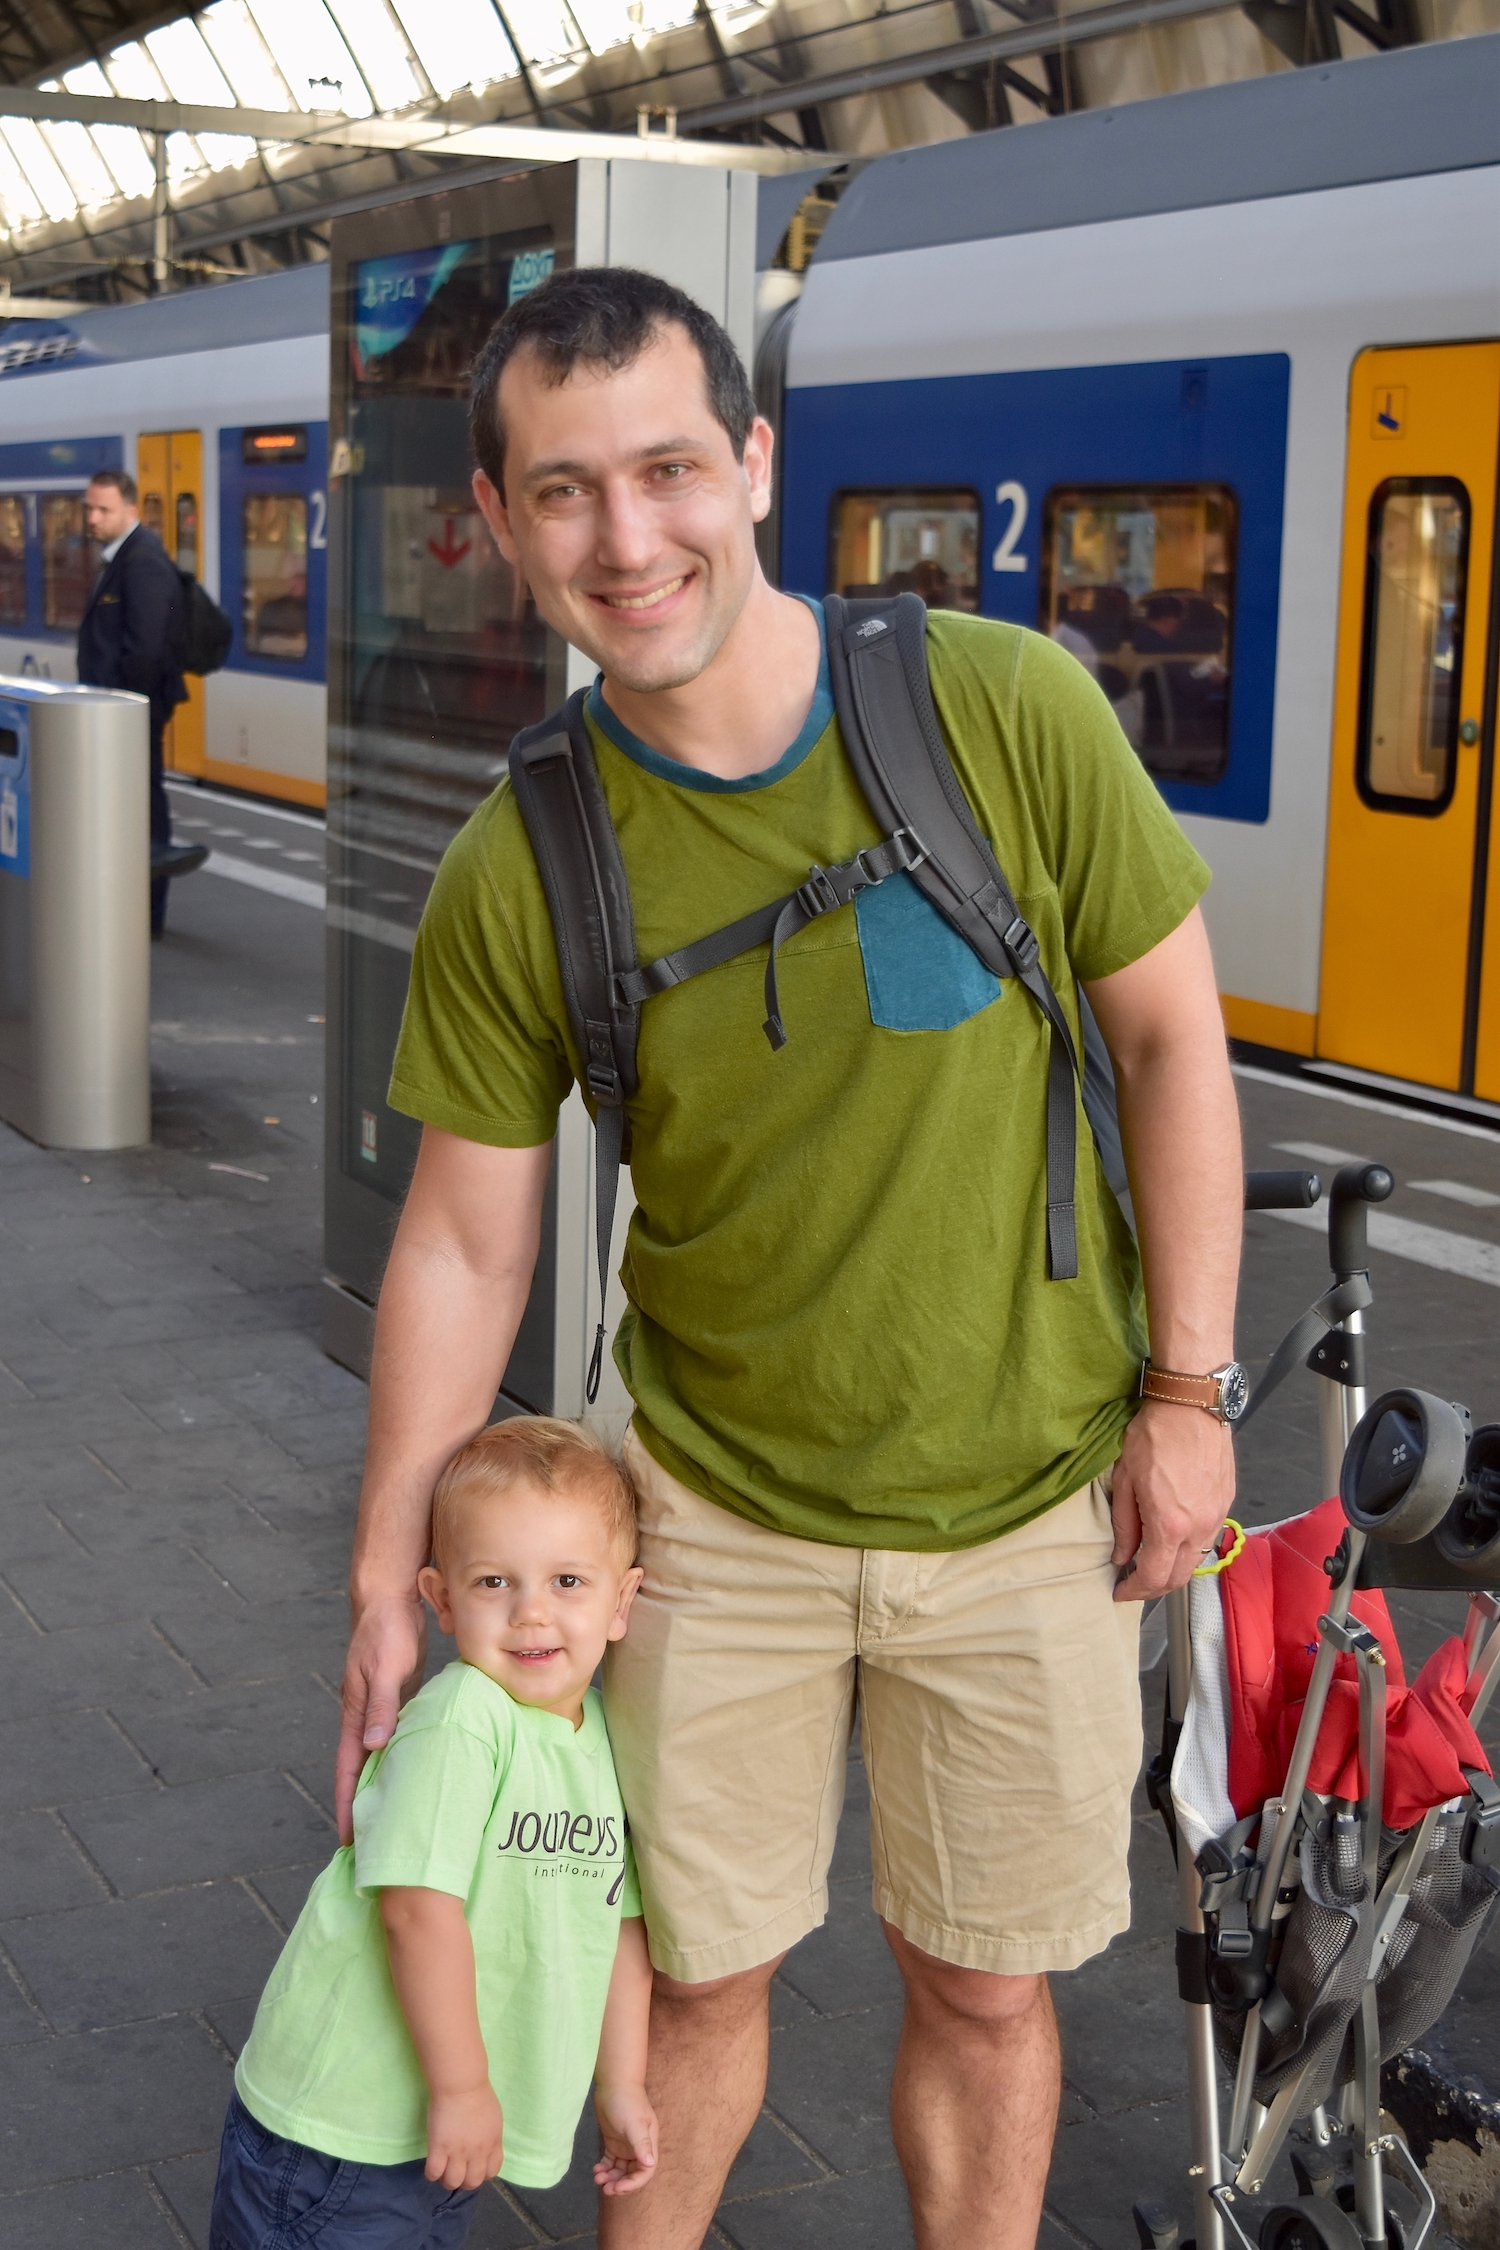 Sustainable tourism includes teaching the kids to use public transportation.